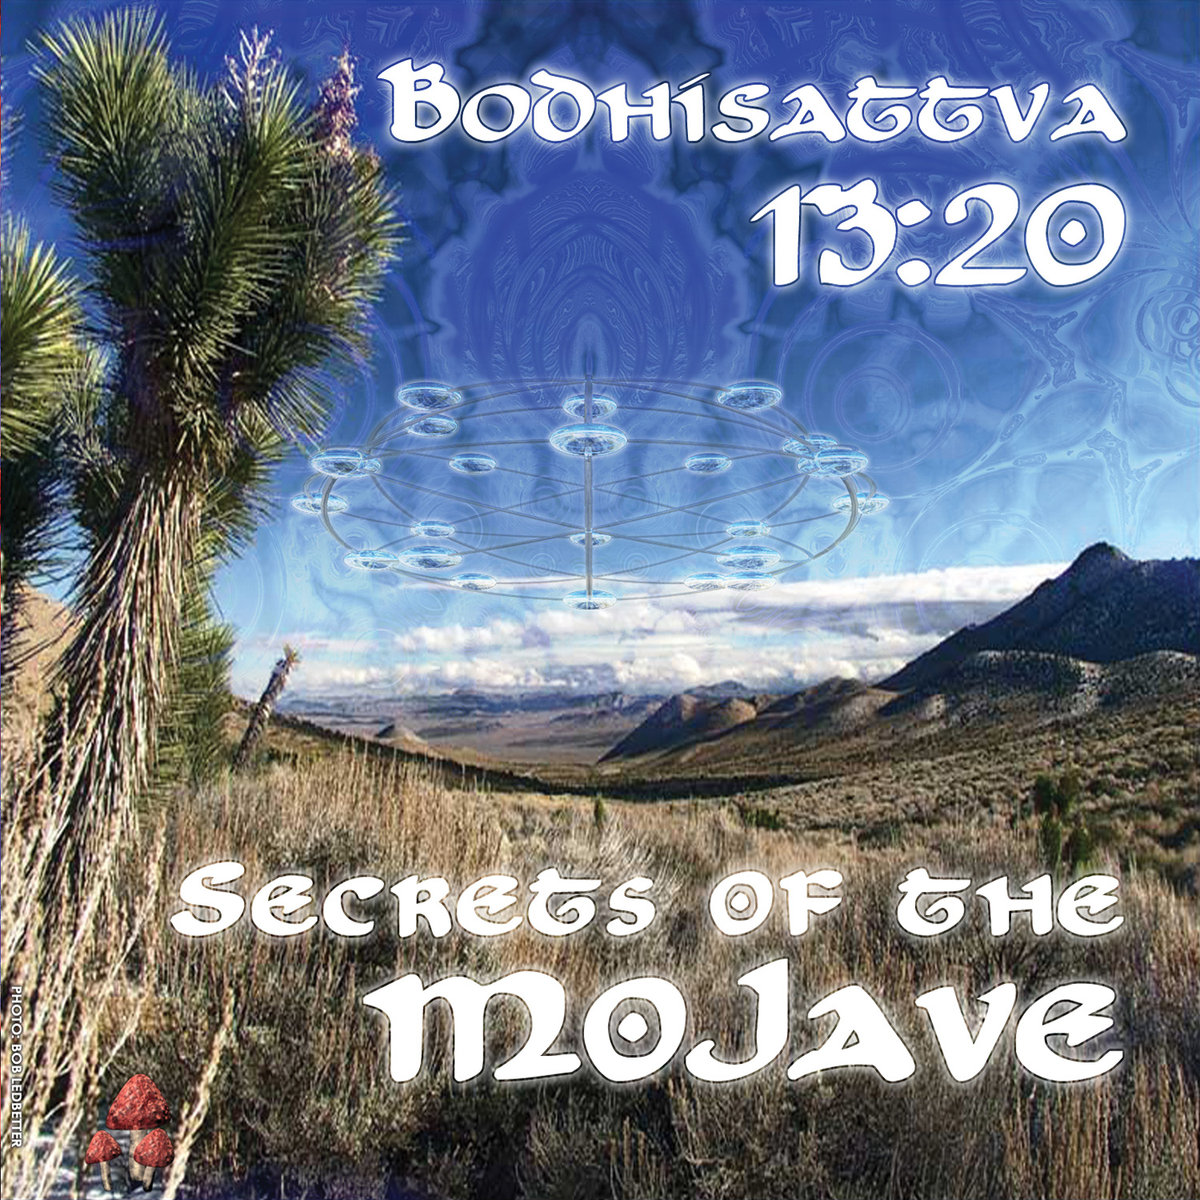 Bodhisattva 13:20 - Thought Invasion @ 'Secrets of the Mojave' album (electronic, goa)